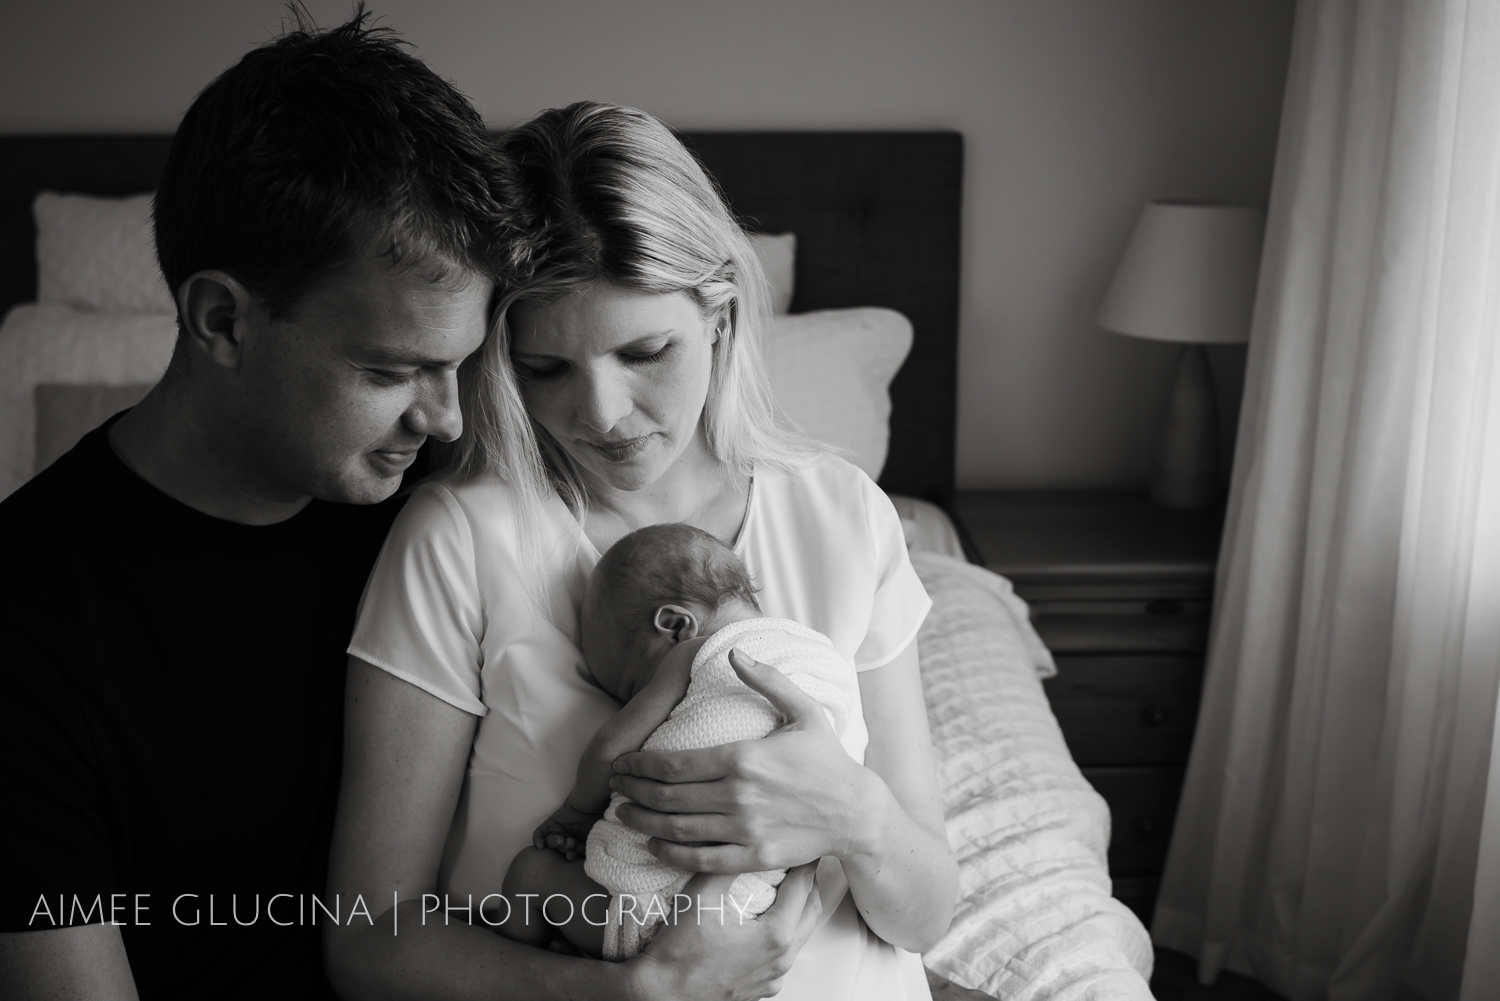 Hills Newborn Lifestyle Session by Aimee Glucina Photography-32.jpg